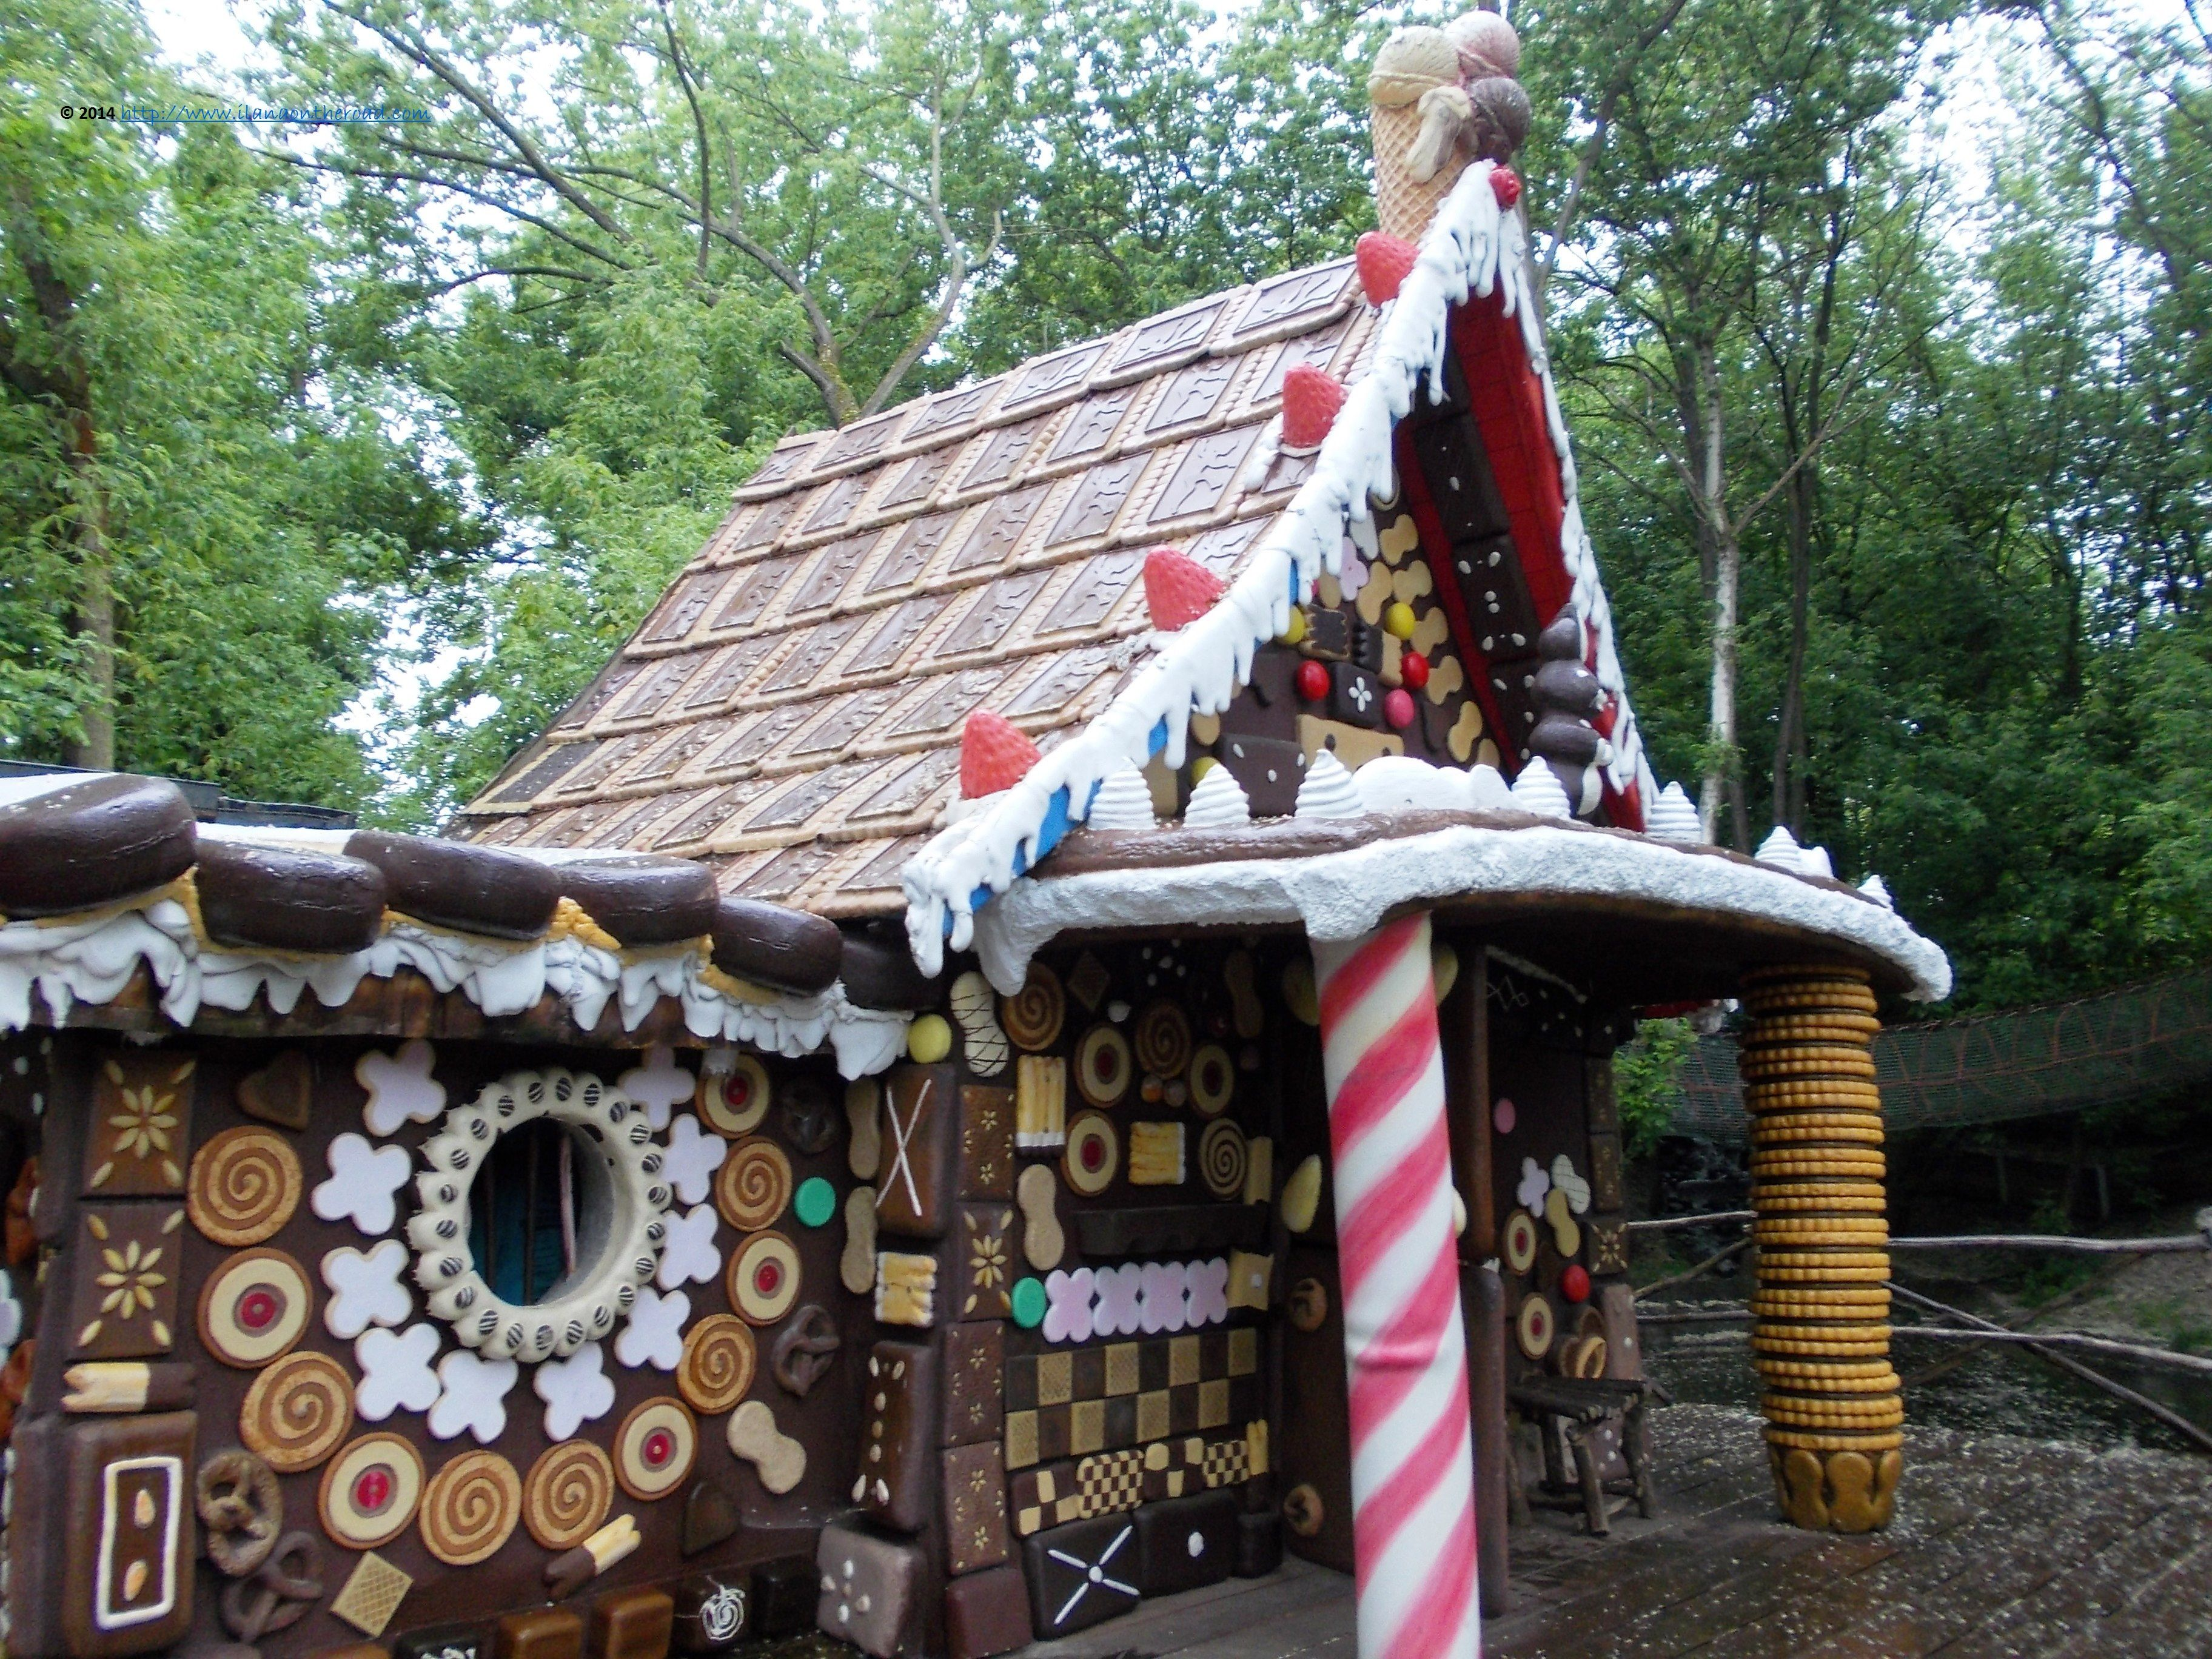 Witch S Cottage From Hansel And Gretel The House Is The Original Set From The German Movie Adaptation T Fairytale Decor Candy House Hansel And Gretel House